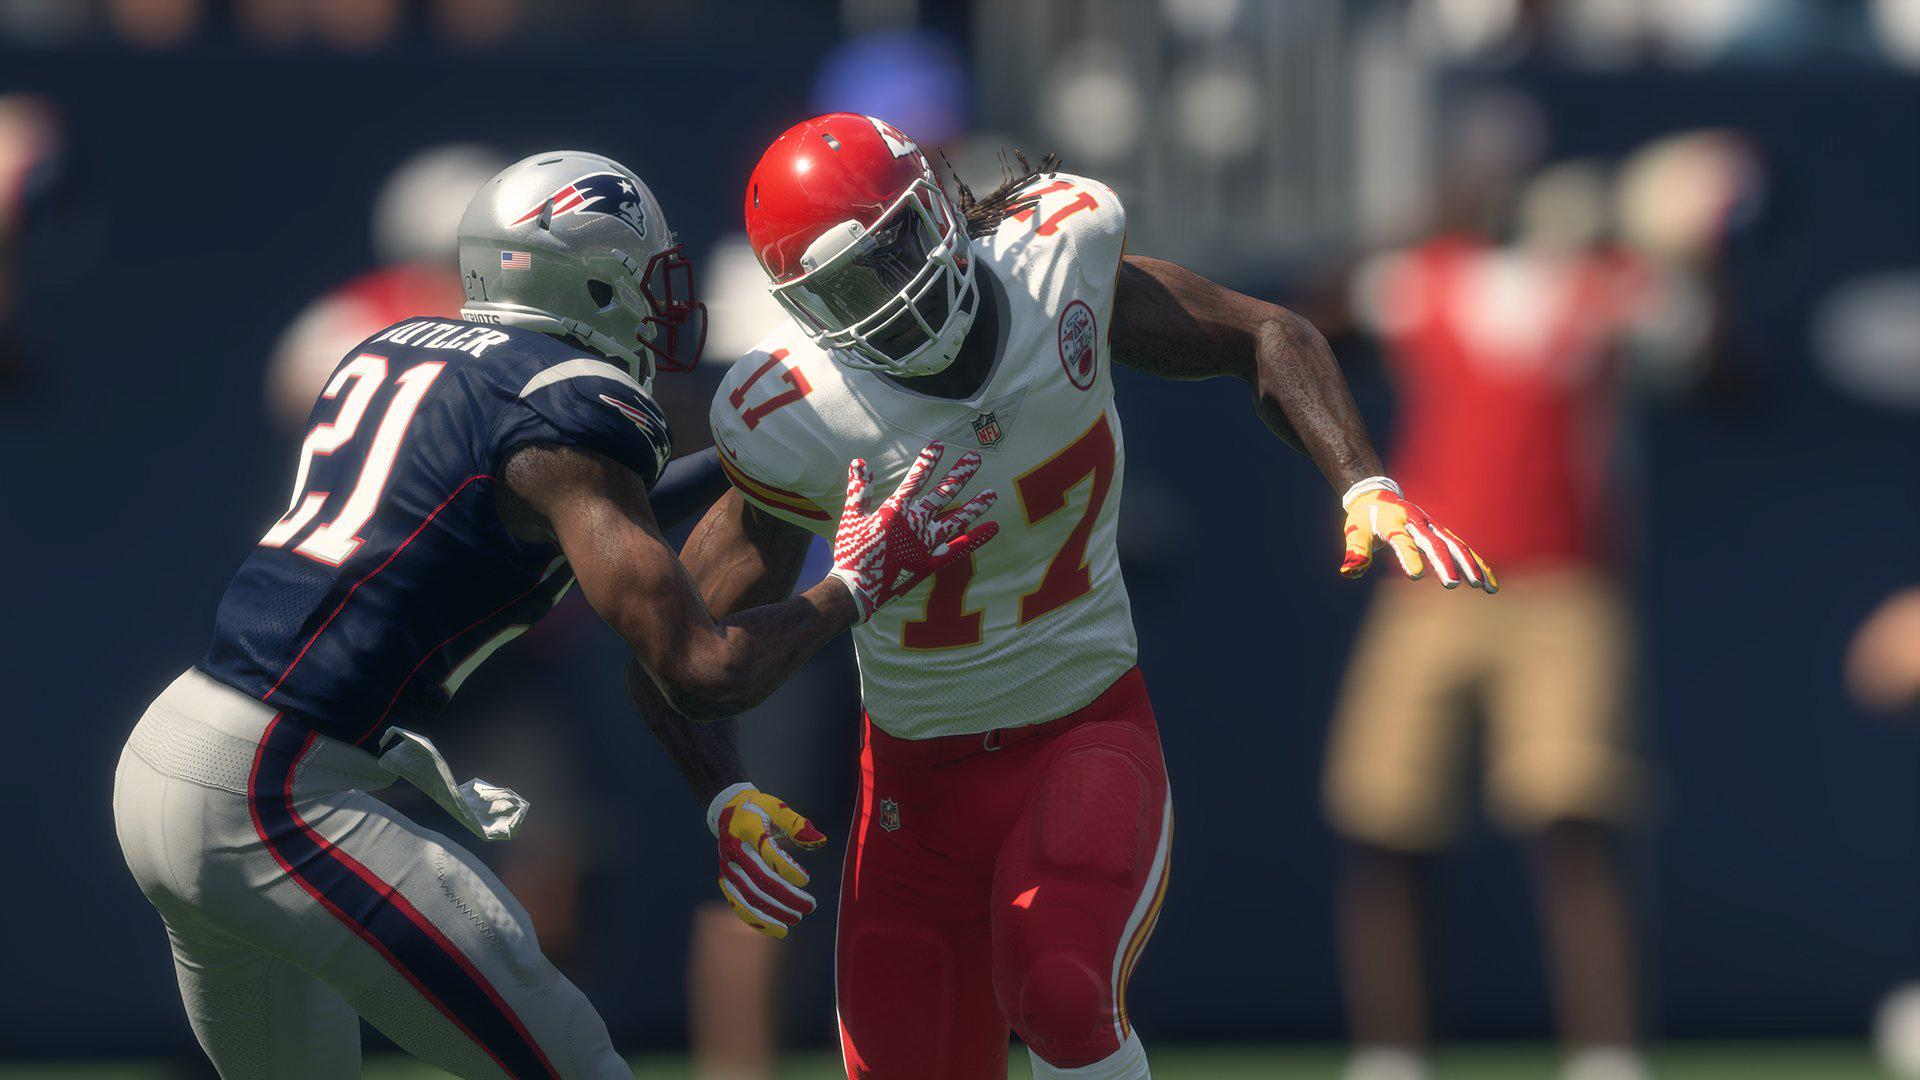 Madden uses the Frostbite engine to great effect – although player models look stiff when compared with FIFA 18